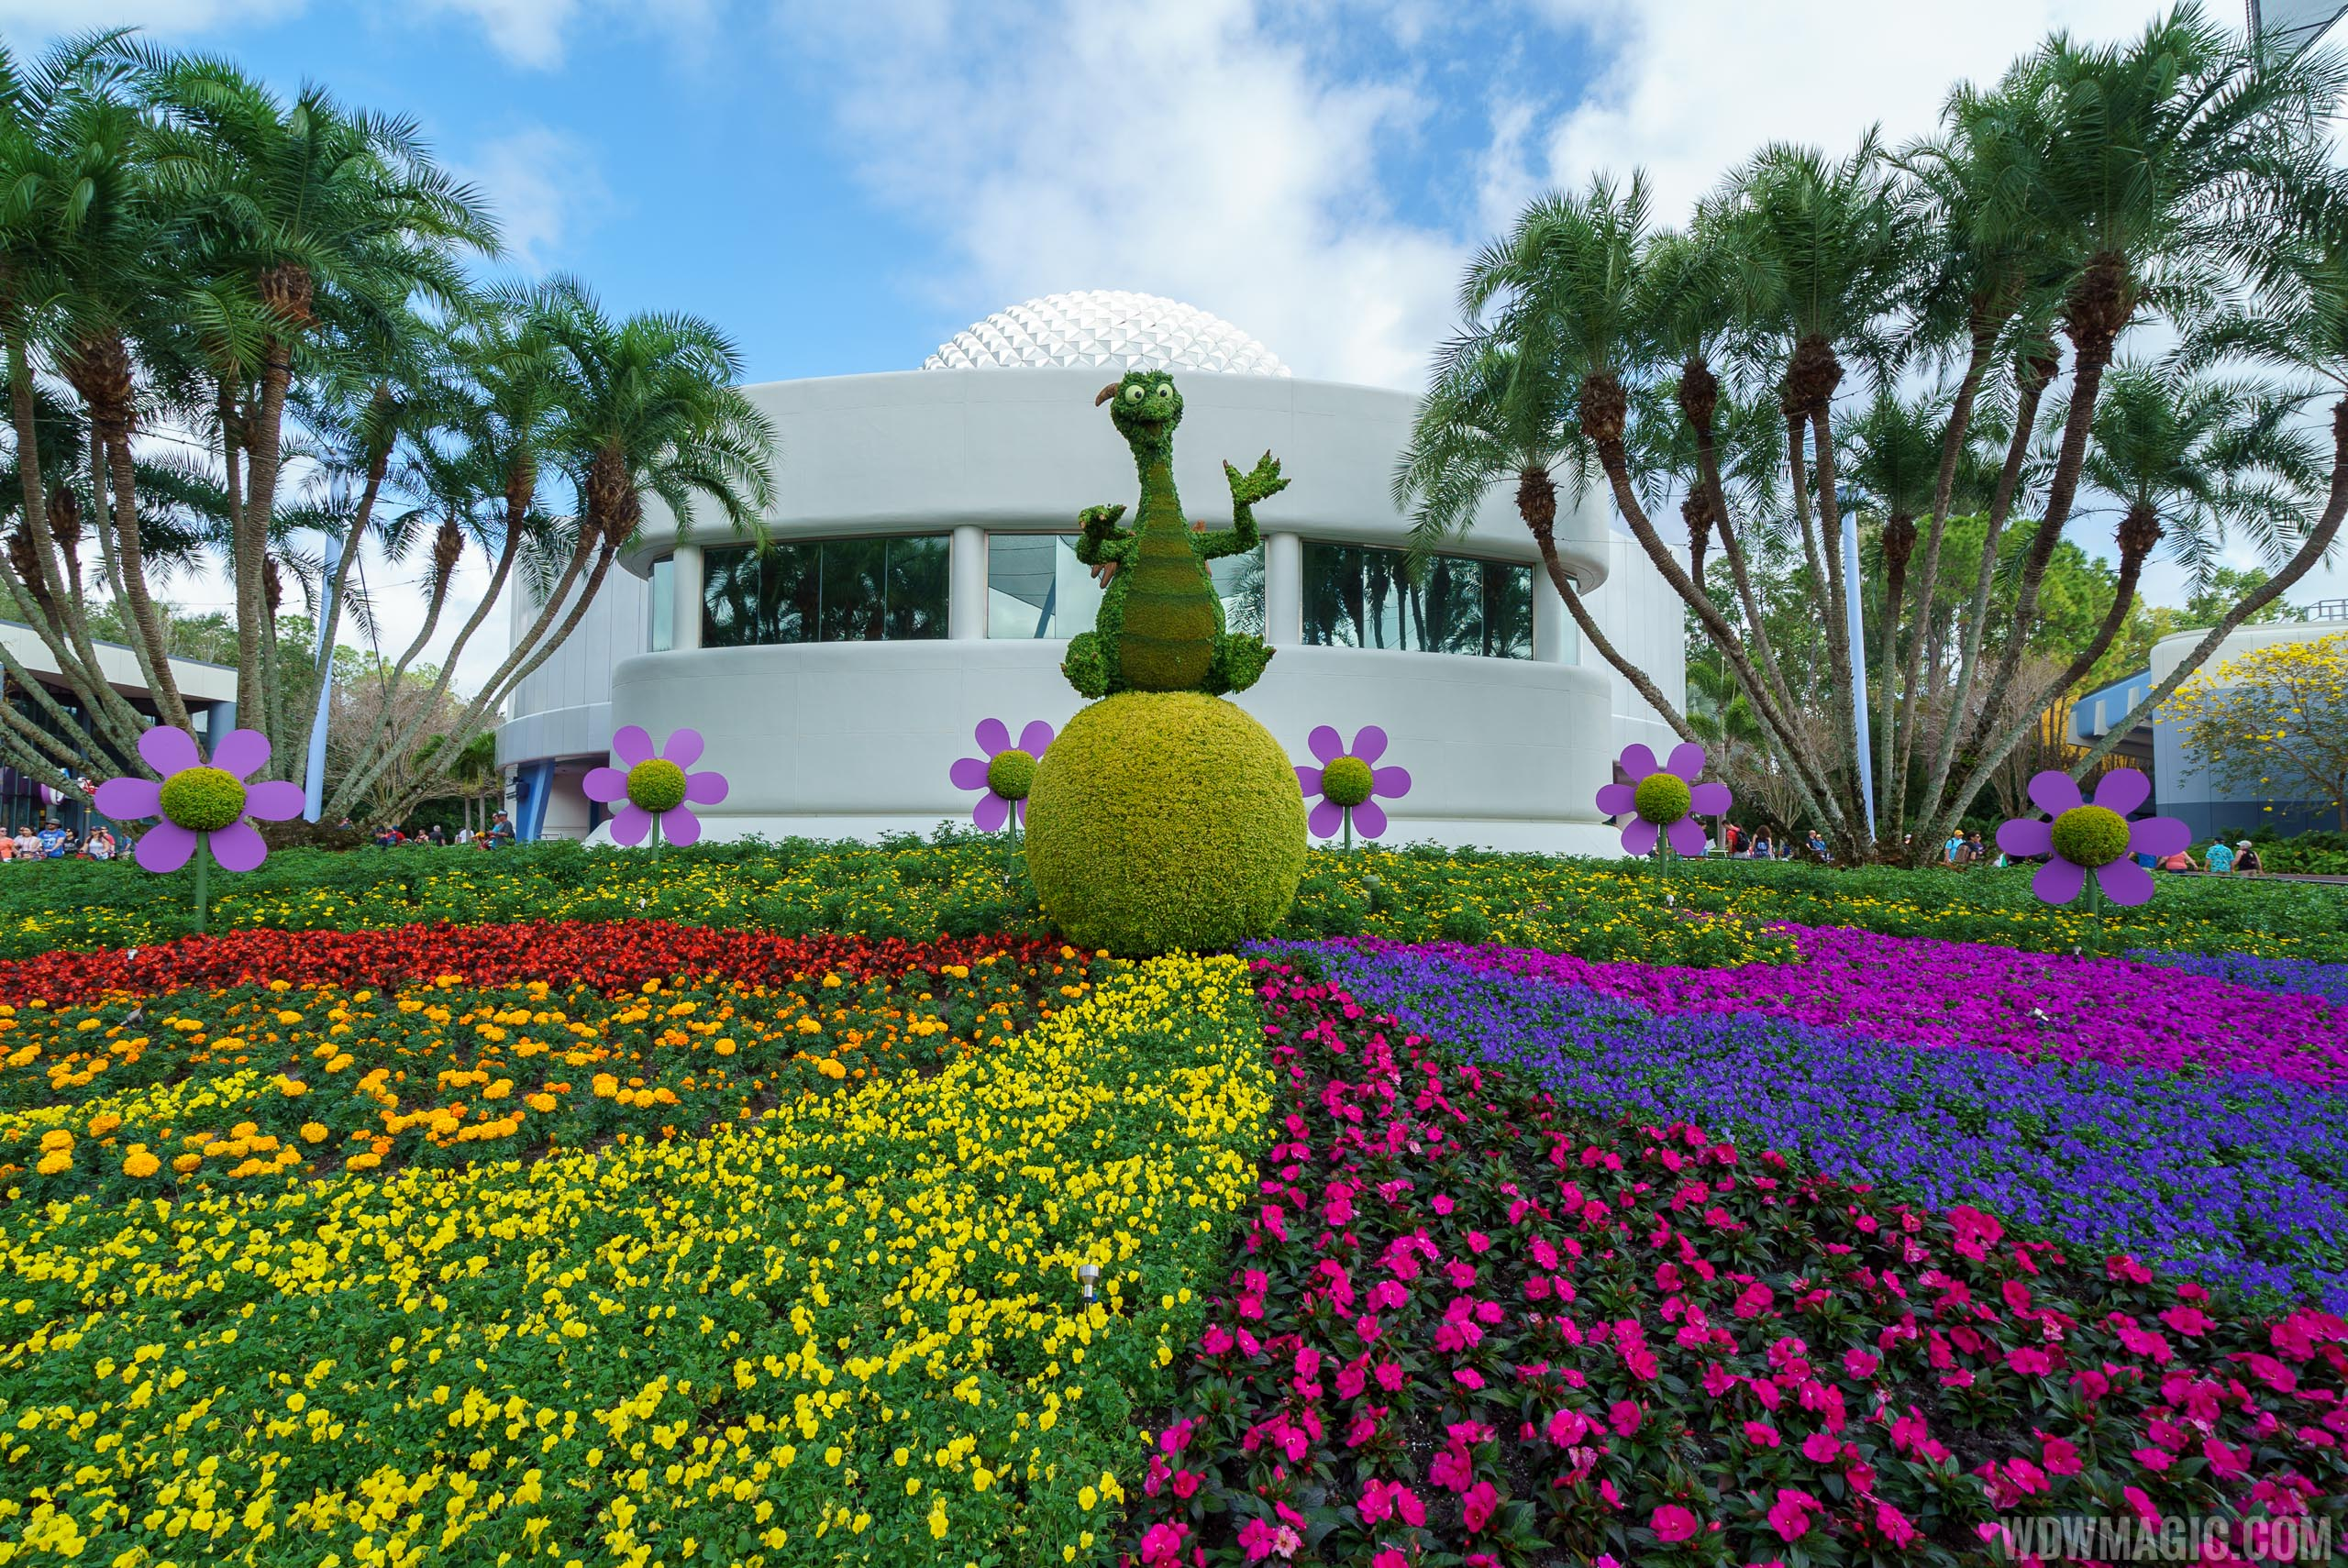 2017 Flower and Garden Festival - Figment topiary near Spaceship Earth